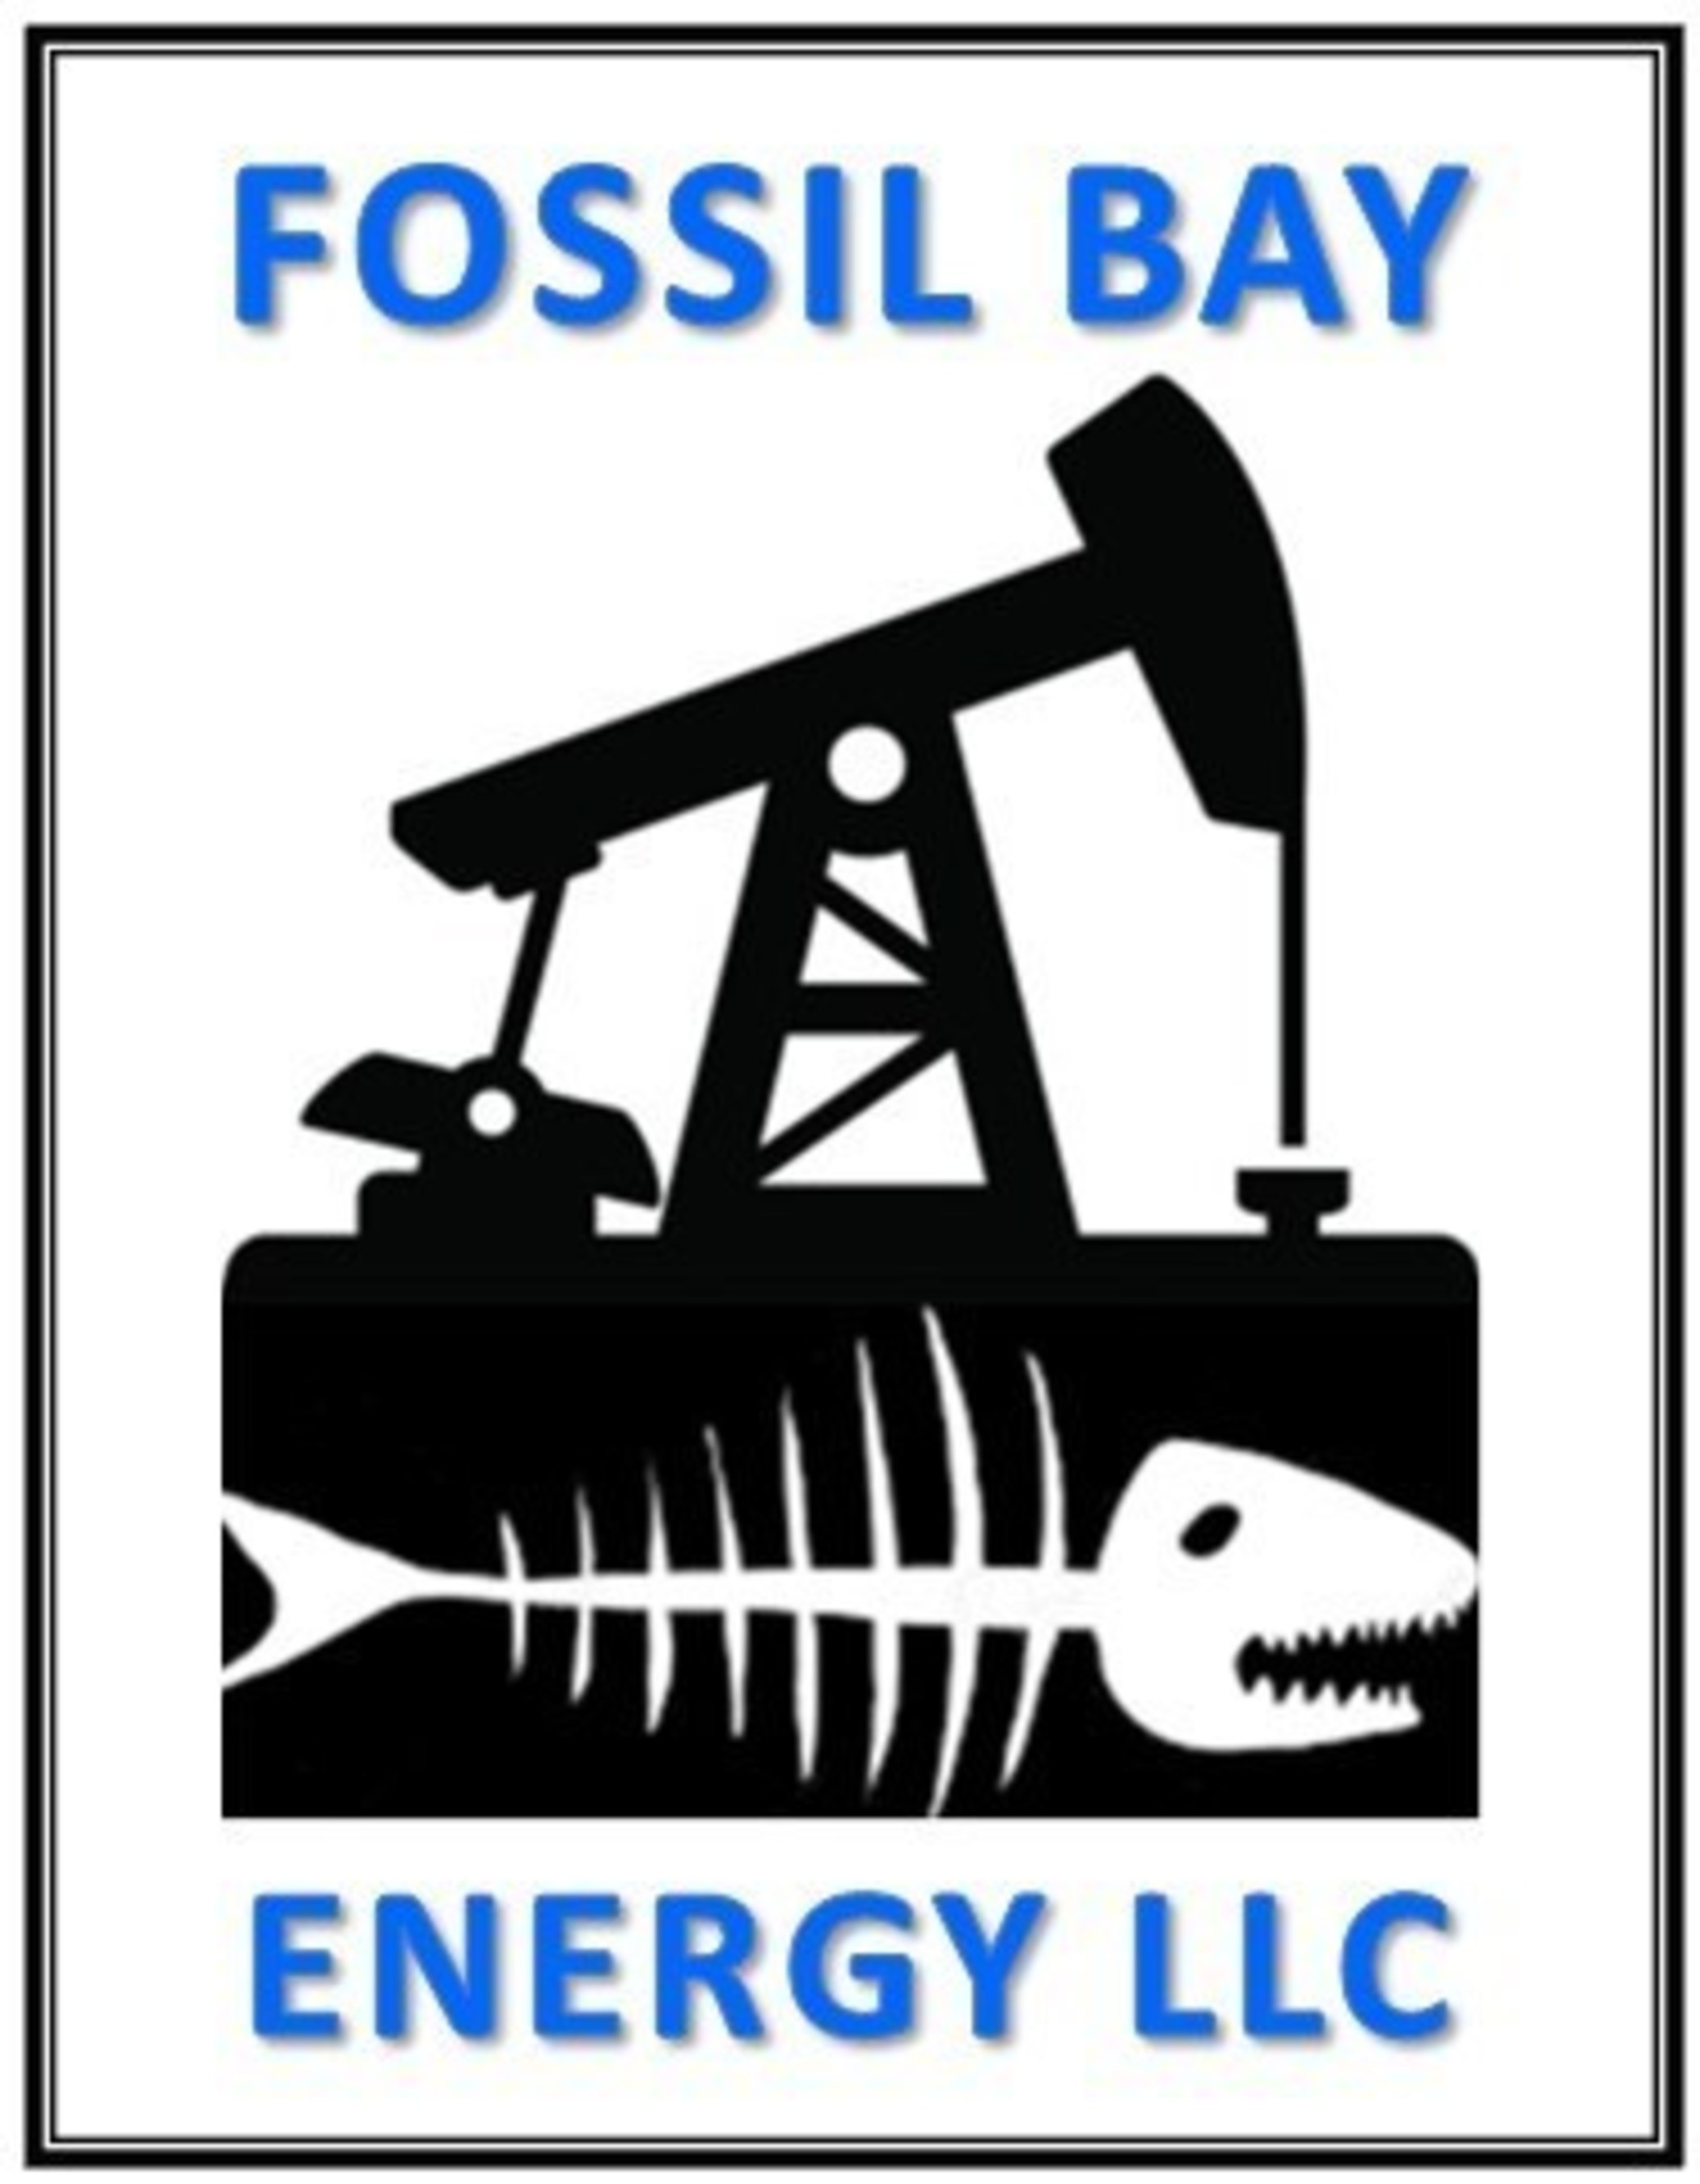 Fossil Bay Energy CO2 EOR Technology Oil Company Logo